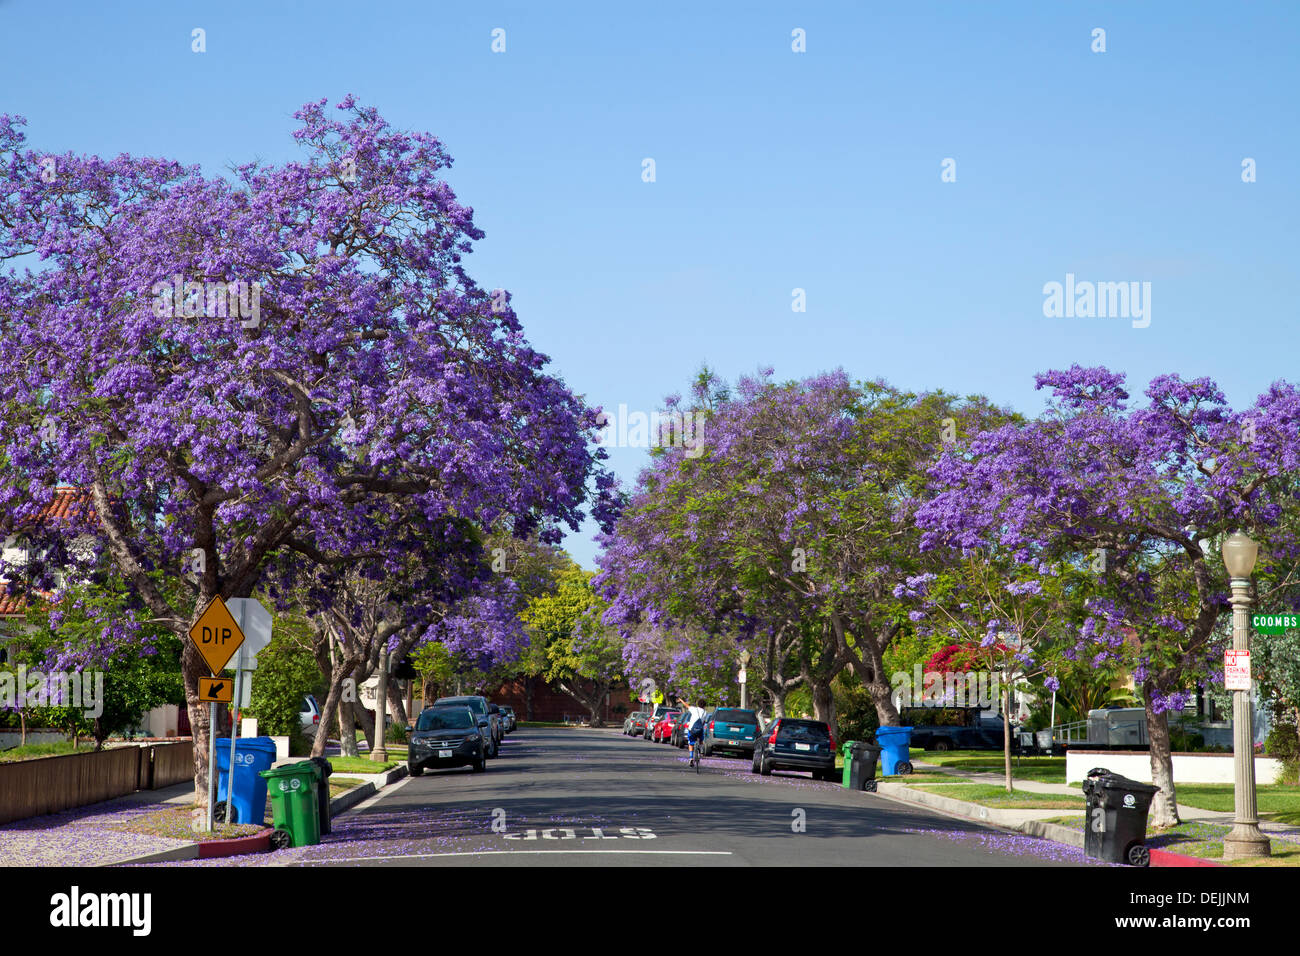 southern home mobile homes html with Stock Photo Jacaranda Trees Blooming Along Street In Culver City Los Angeles California 60646144 on Raw Video Fire In Santa Clarita Los Angeles 309105261 furthermore Stock Photo Traditional African Village Near Victoria Falls Zimbabwe Africa Aerial 57807560 likewise 1979 Robinhood Sportsman Rv Motorhome Dodge F40 24565721 in addition 07hours besides 29iht Remumbai29.